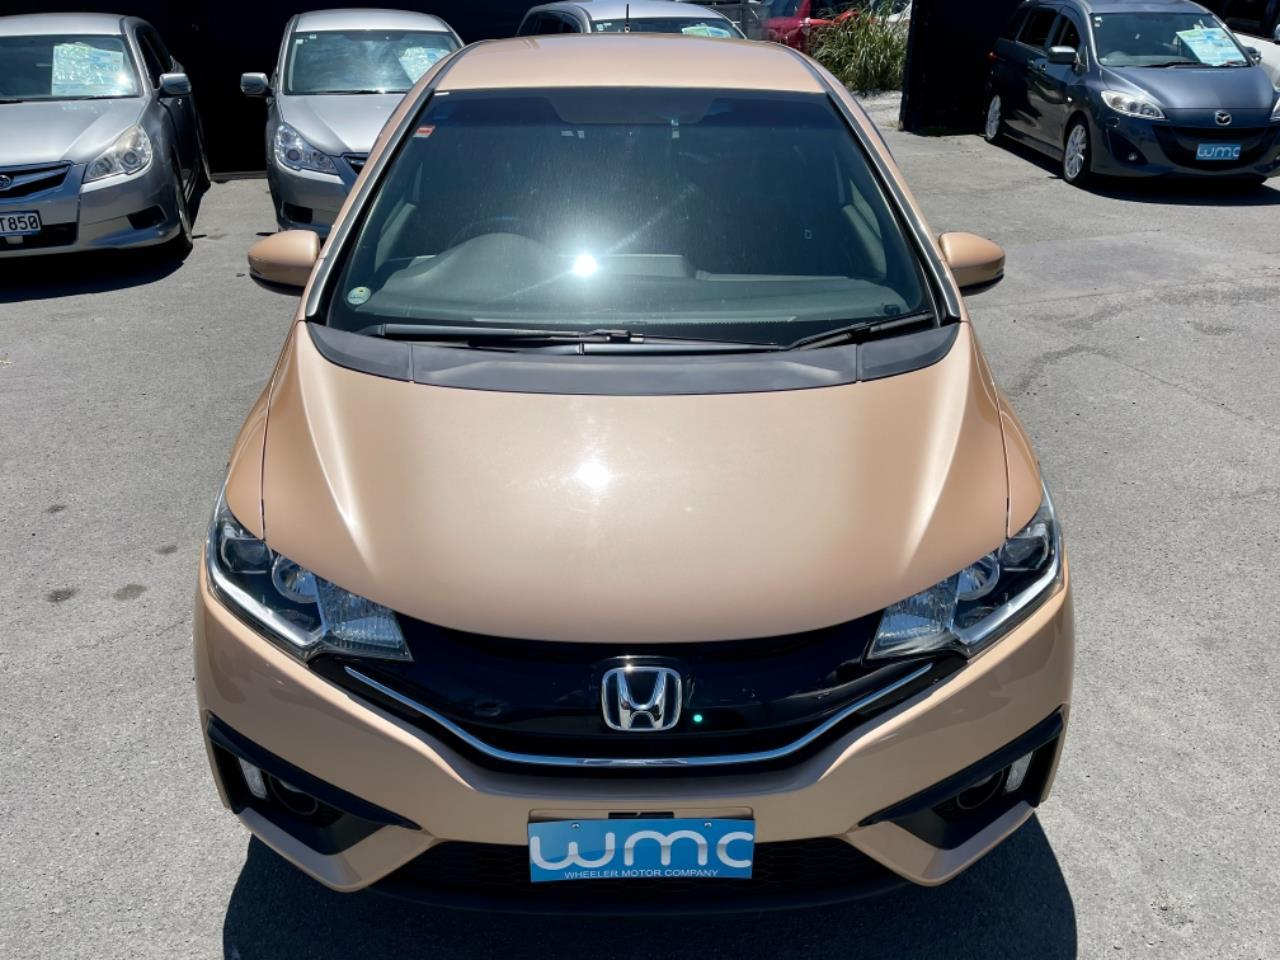 image-2, 2013 Honda Fit RS 1.5lt Hybrid at Christchurch